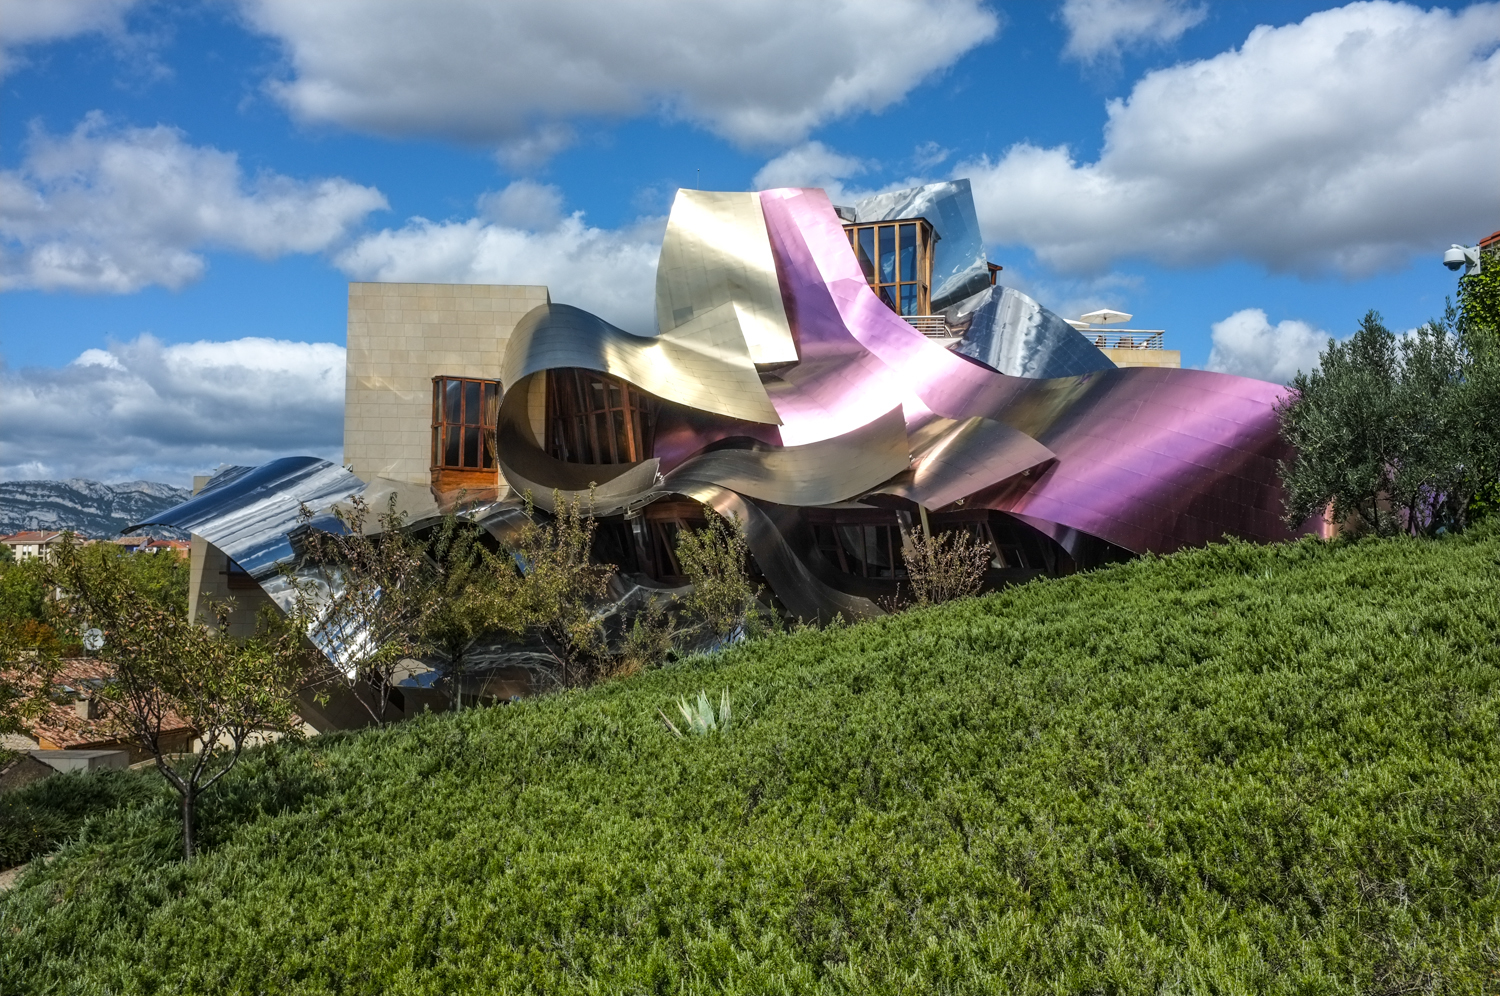 Frank gehry in rioja hotel marques de riscal - Marquis de riscal hotel ...